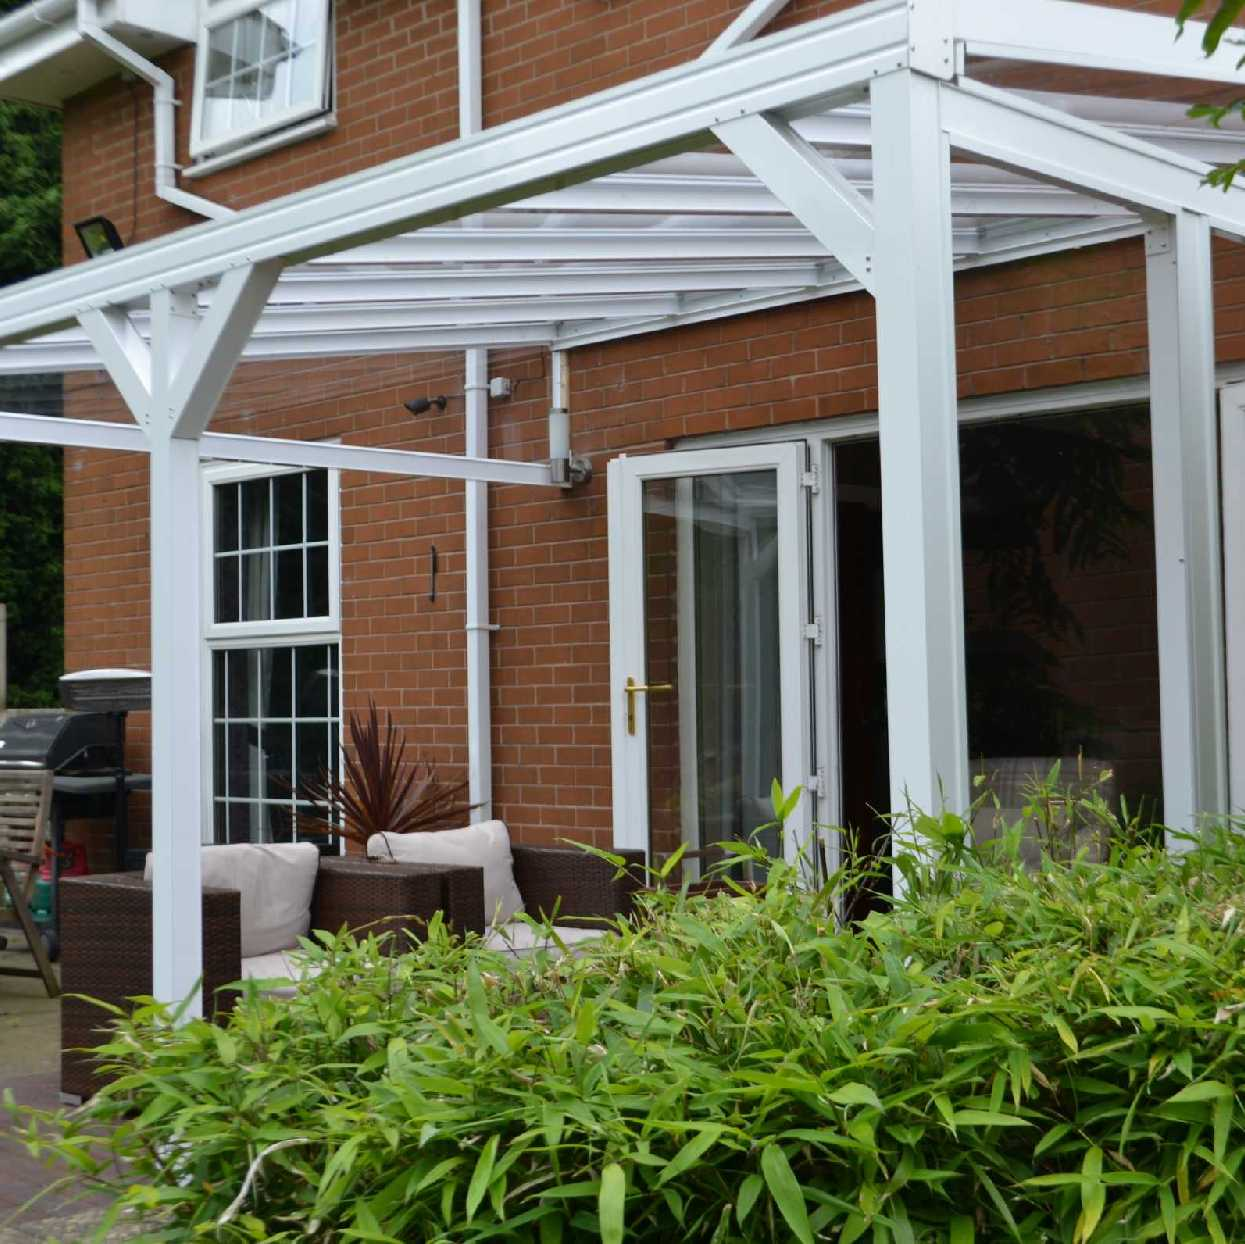 Omega Smart Lean-To Canopy UNGLAZED for 6mm Glazing - 4.9m (W) x 2.0m (P), (3) Supporting Posts from Omega Build